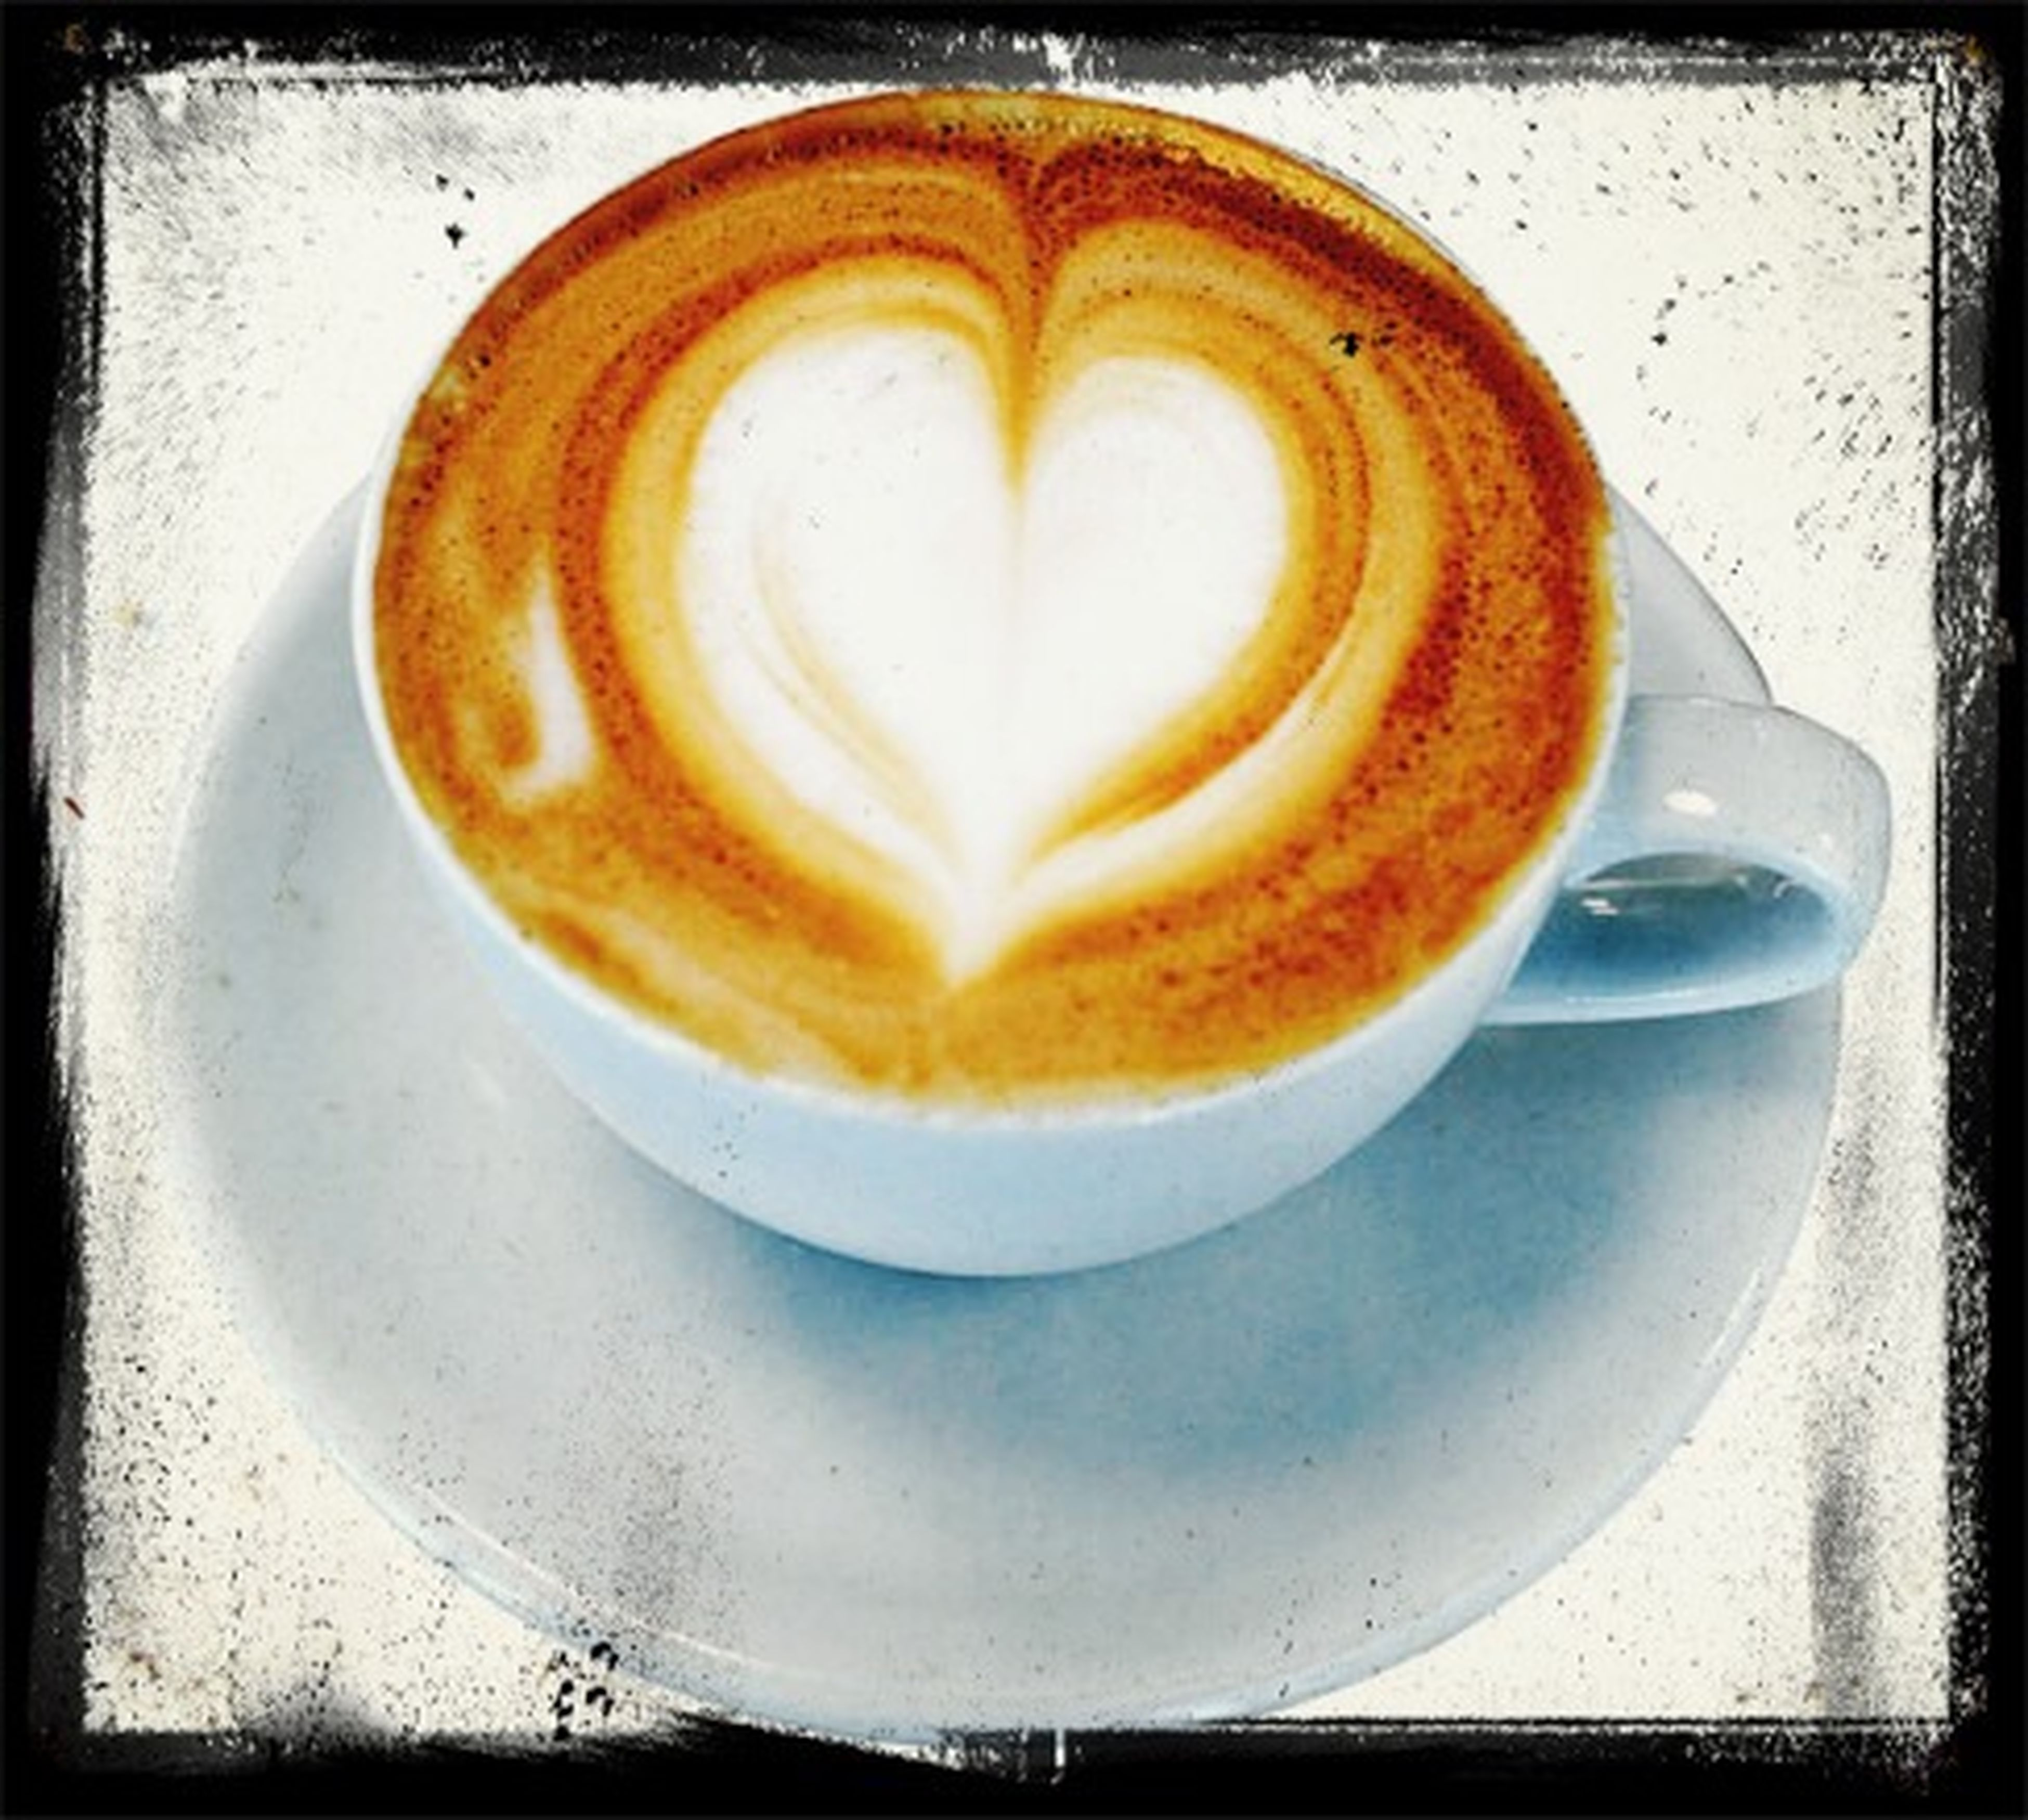 food and drink, coffee cup, coffee - drink, froth art, refreshment, drink, frothy drink, cappuccino, indoors, saucer, freshness, table, still life, coffee, close-up, heart shape, high angle view, latte, art, creativity